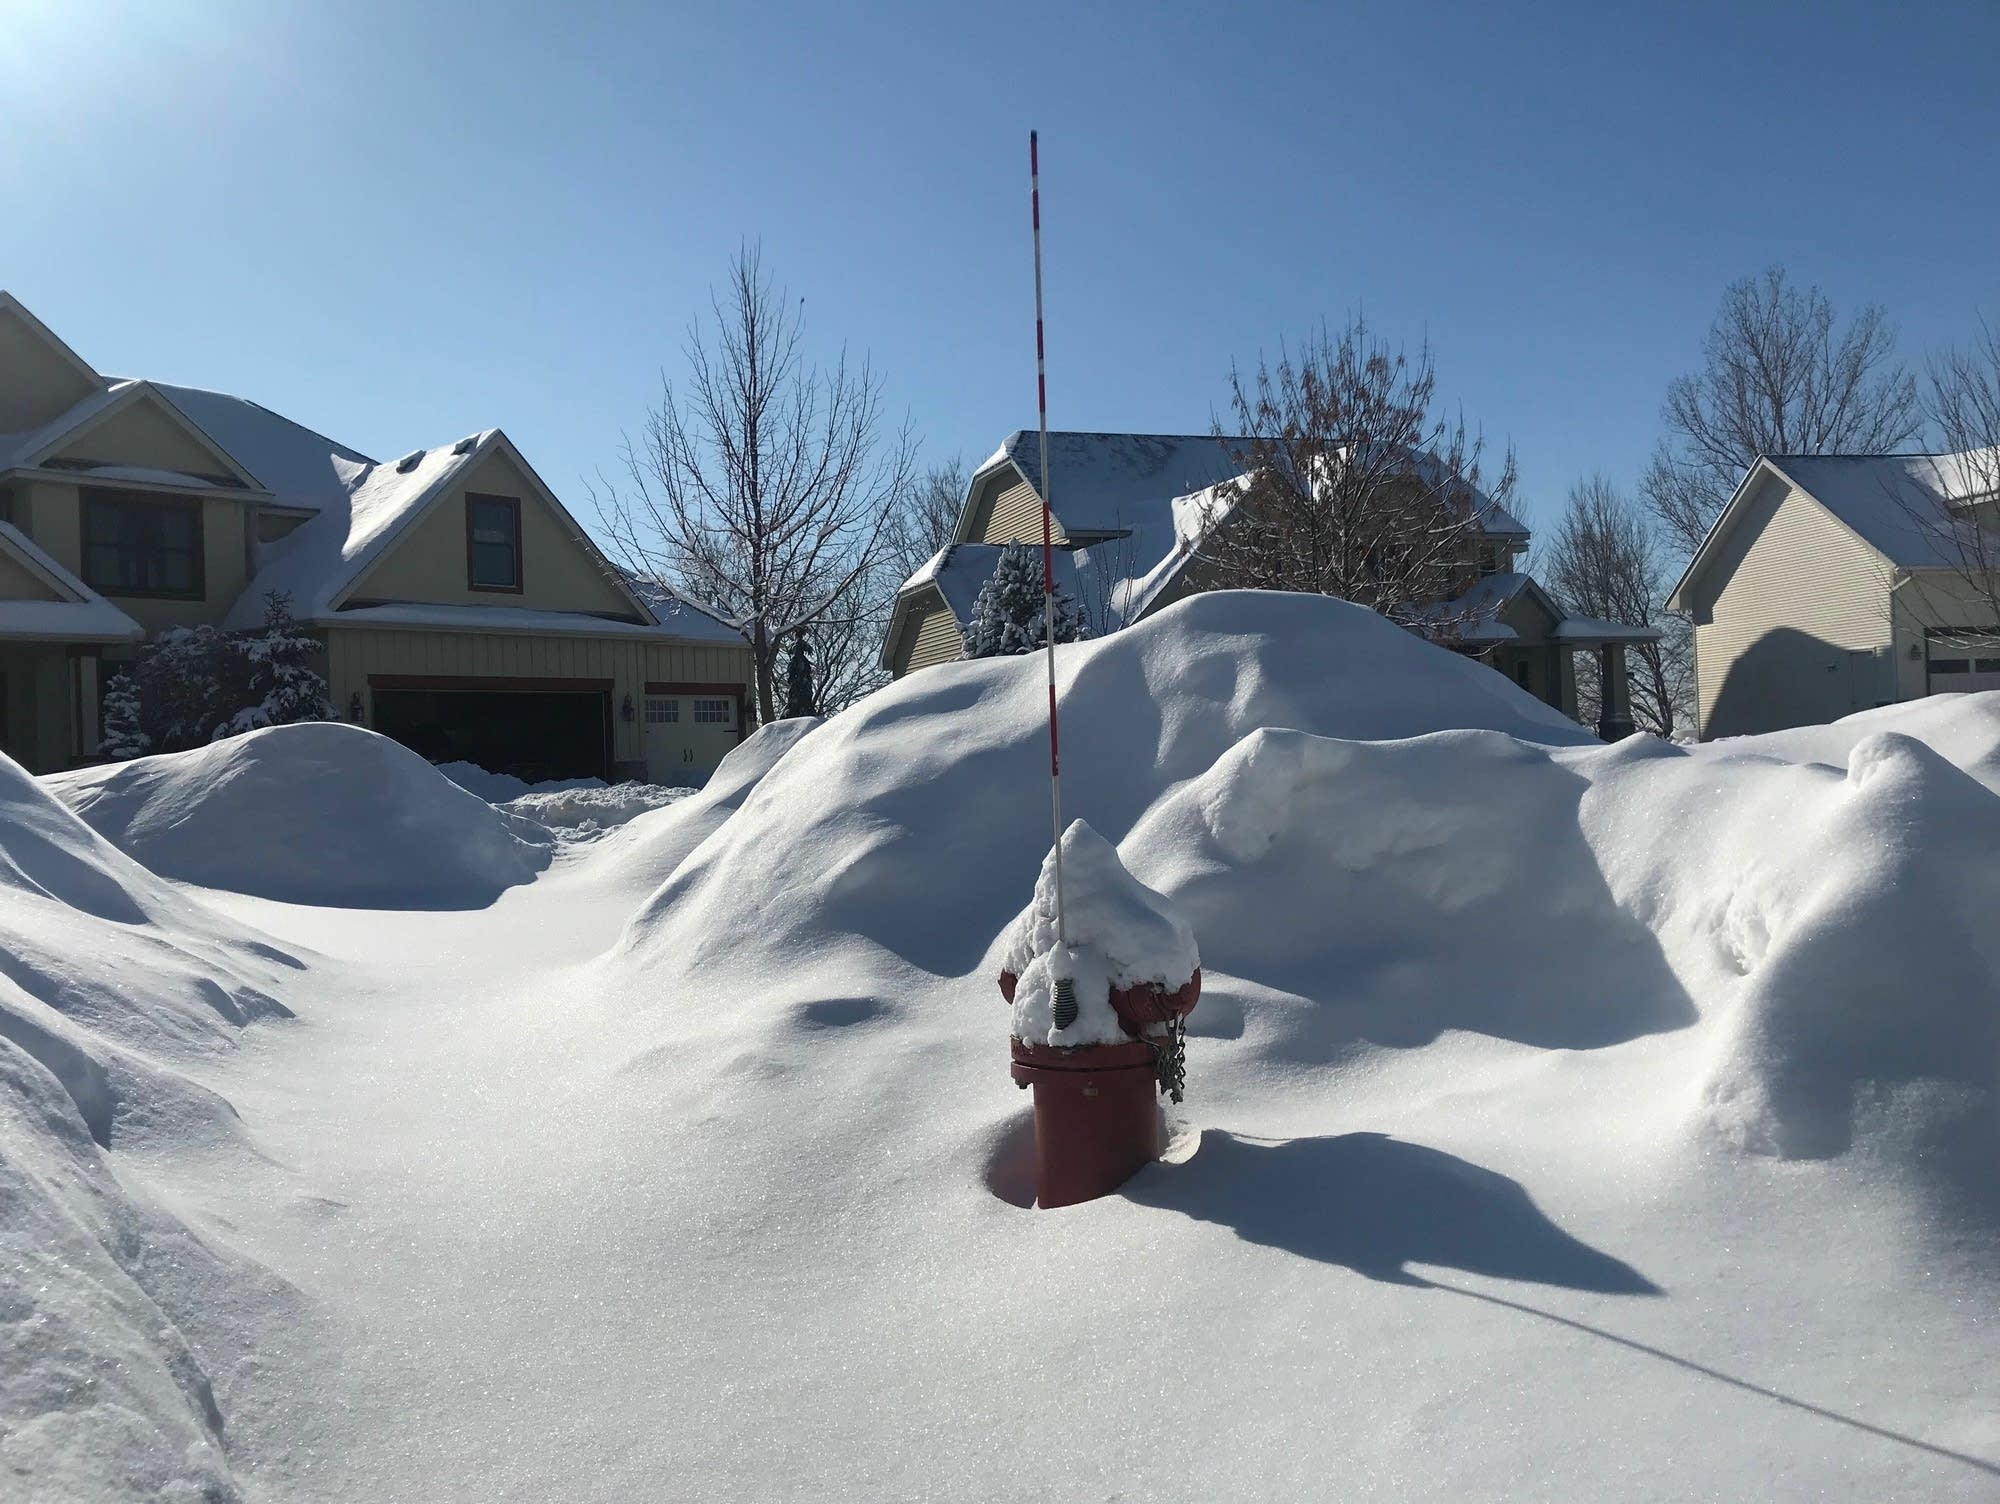 A fire hydrant awaits shoveling out in Chaska